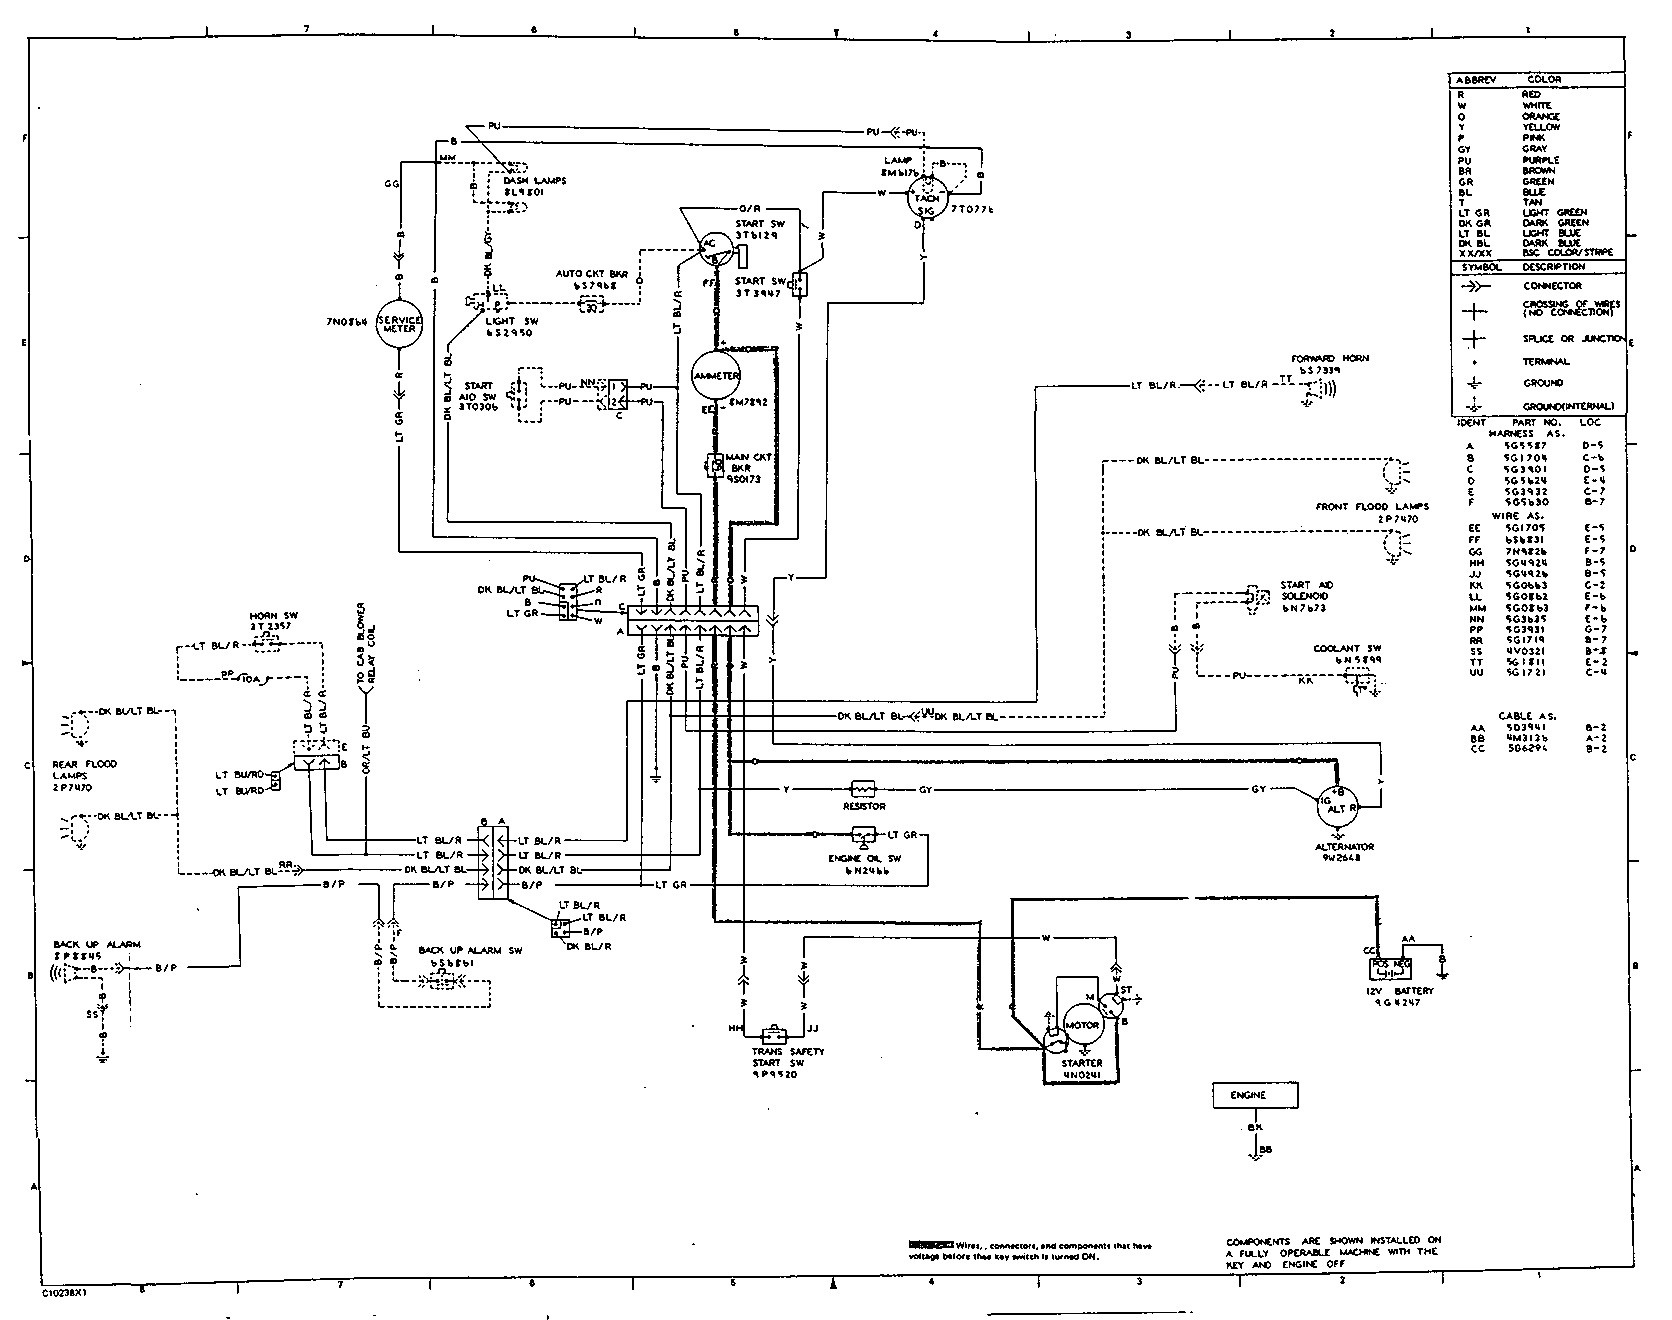 C10 Cat Engine Diagram | #1 Wiring Diagram Source